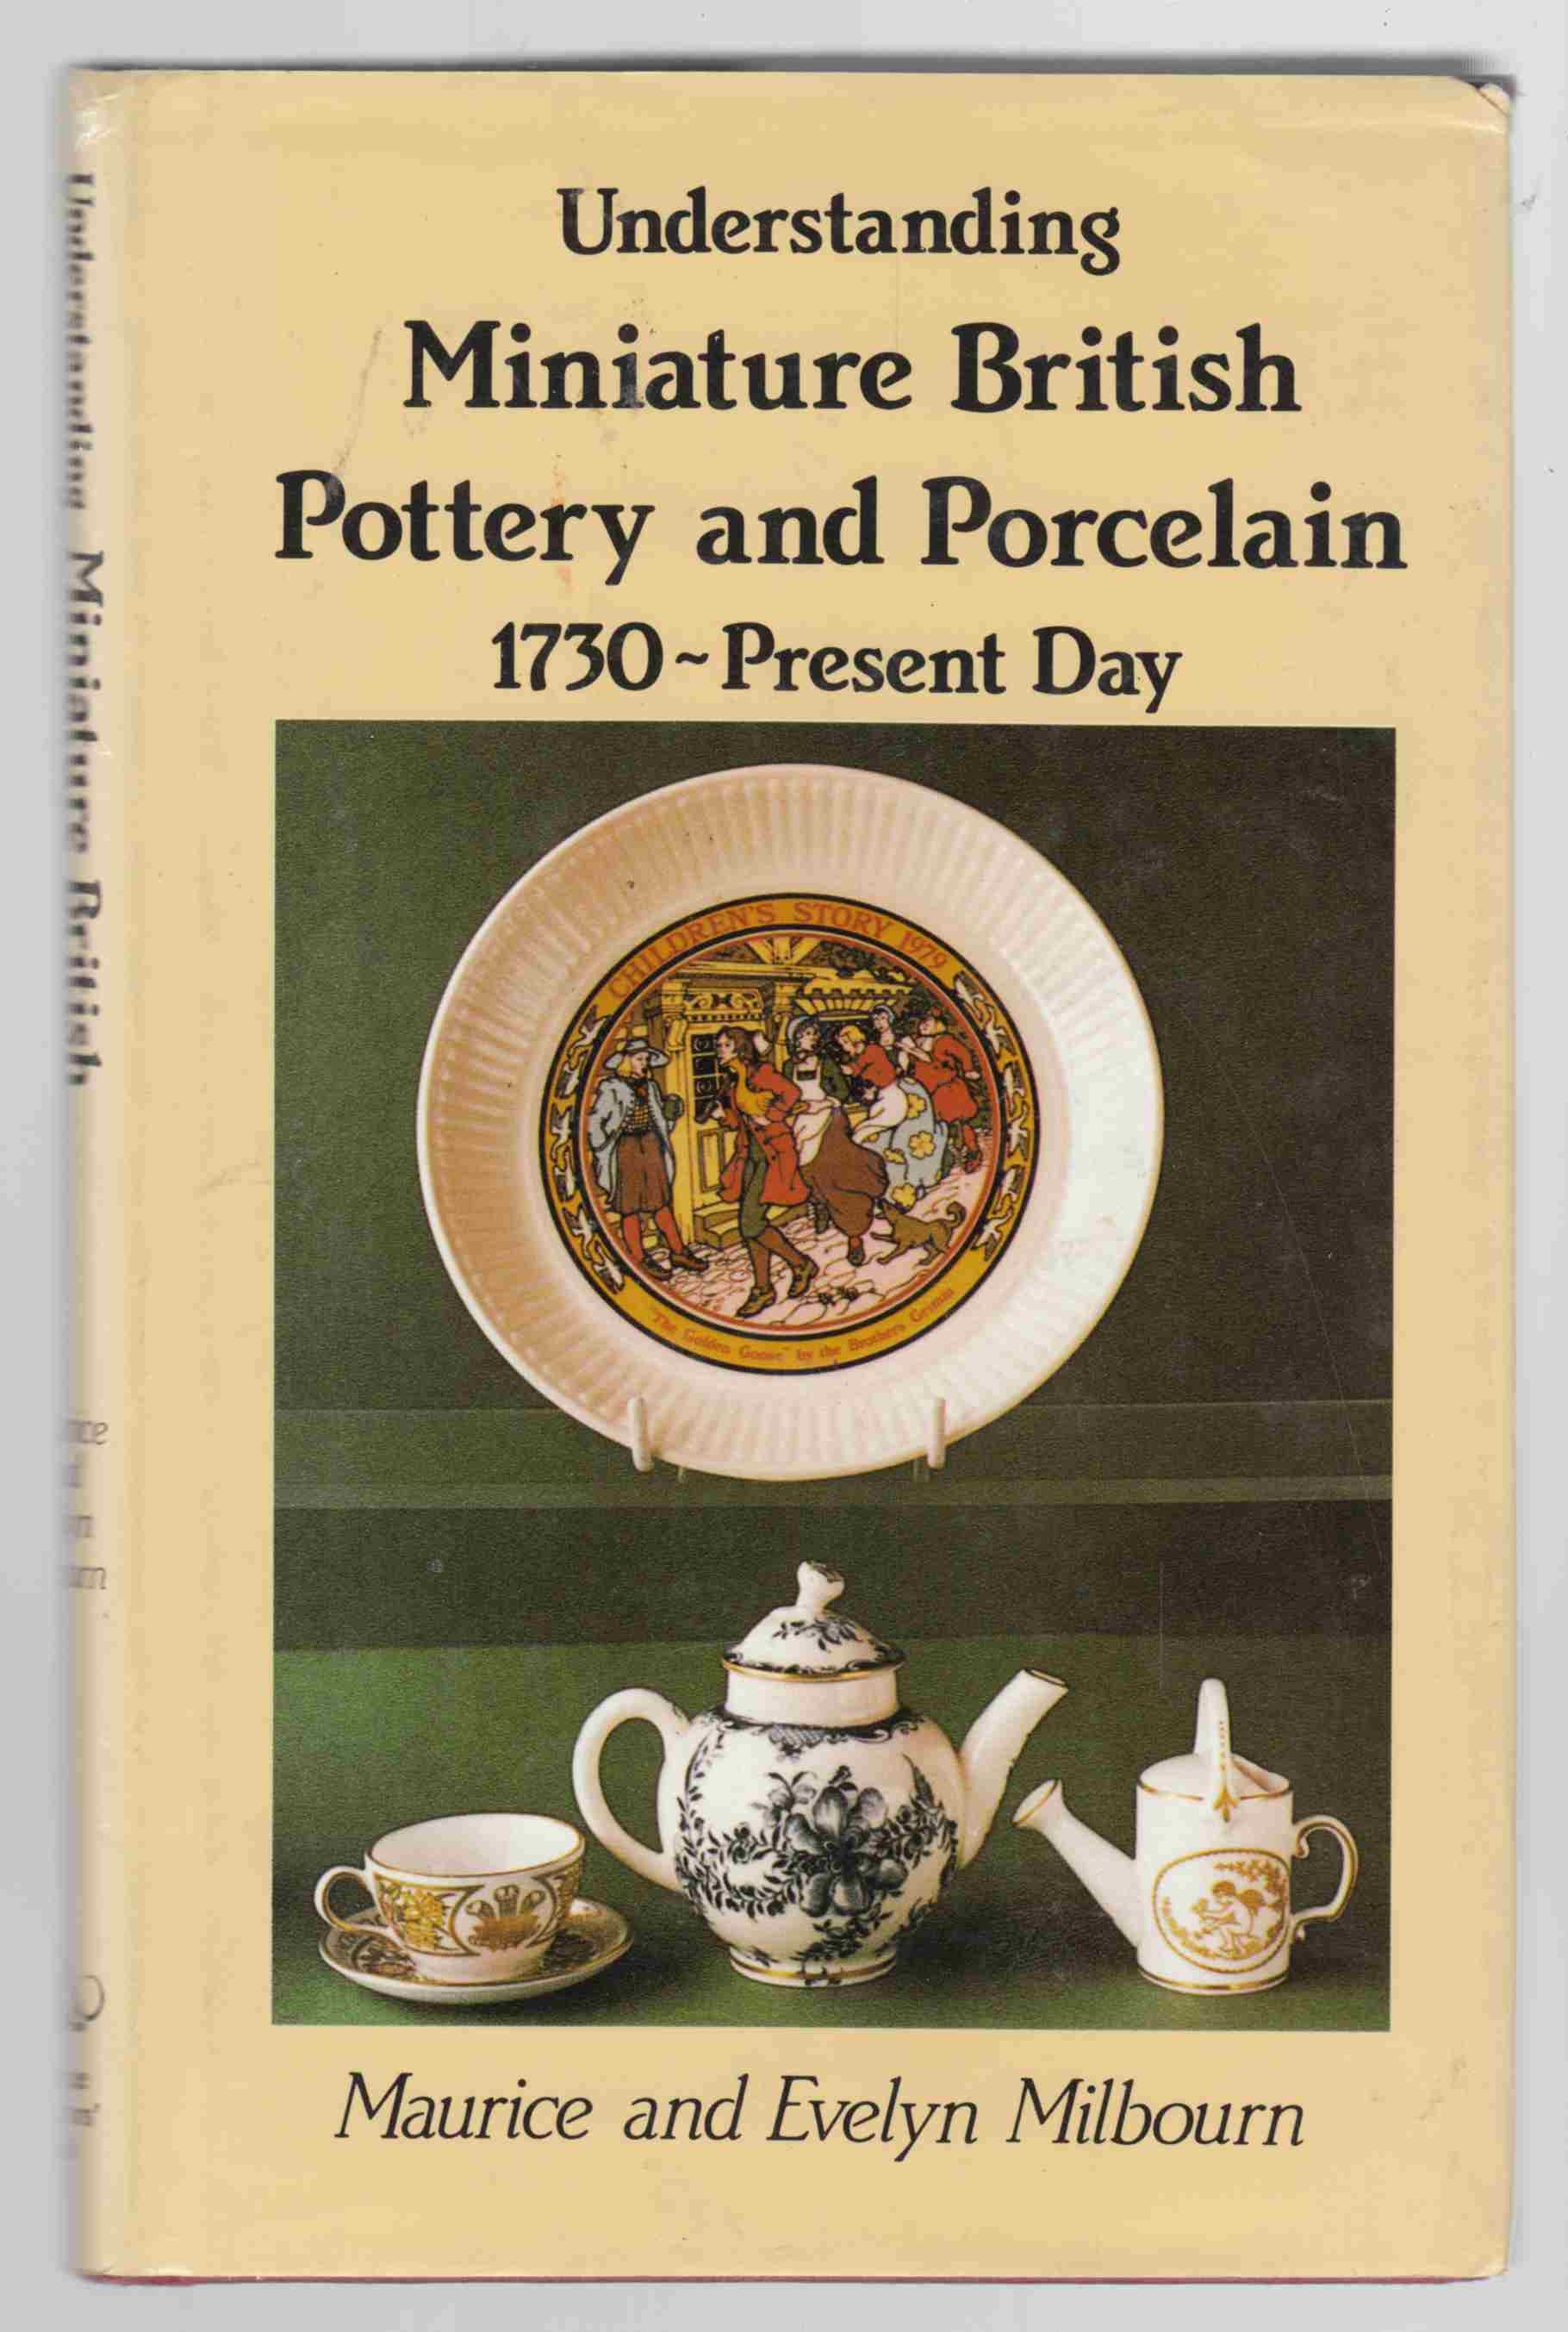 Image for Understanding Miniature British Pottery and Porcelain 1730-Present Day